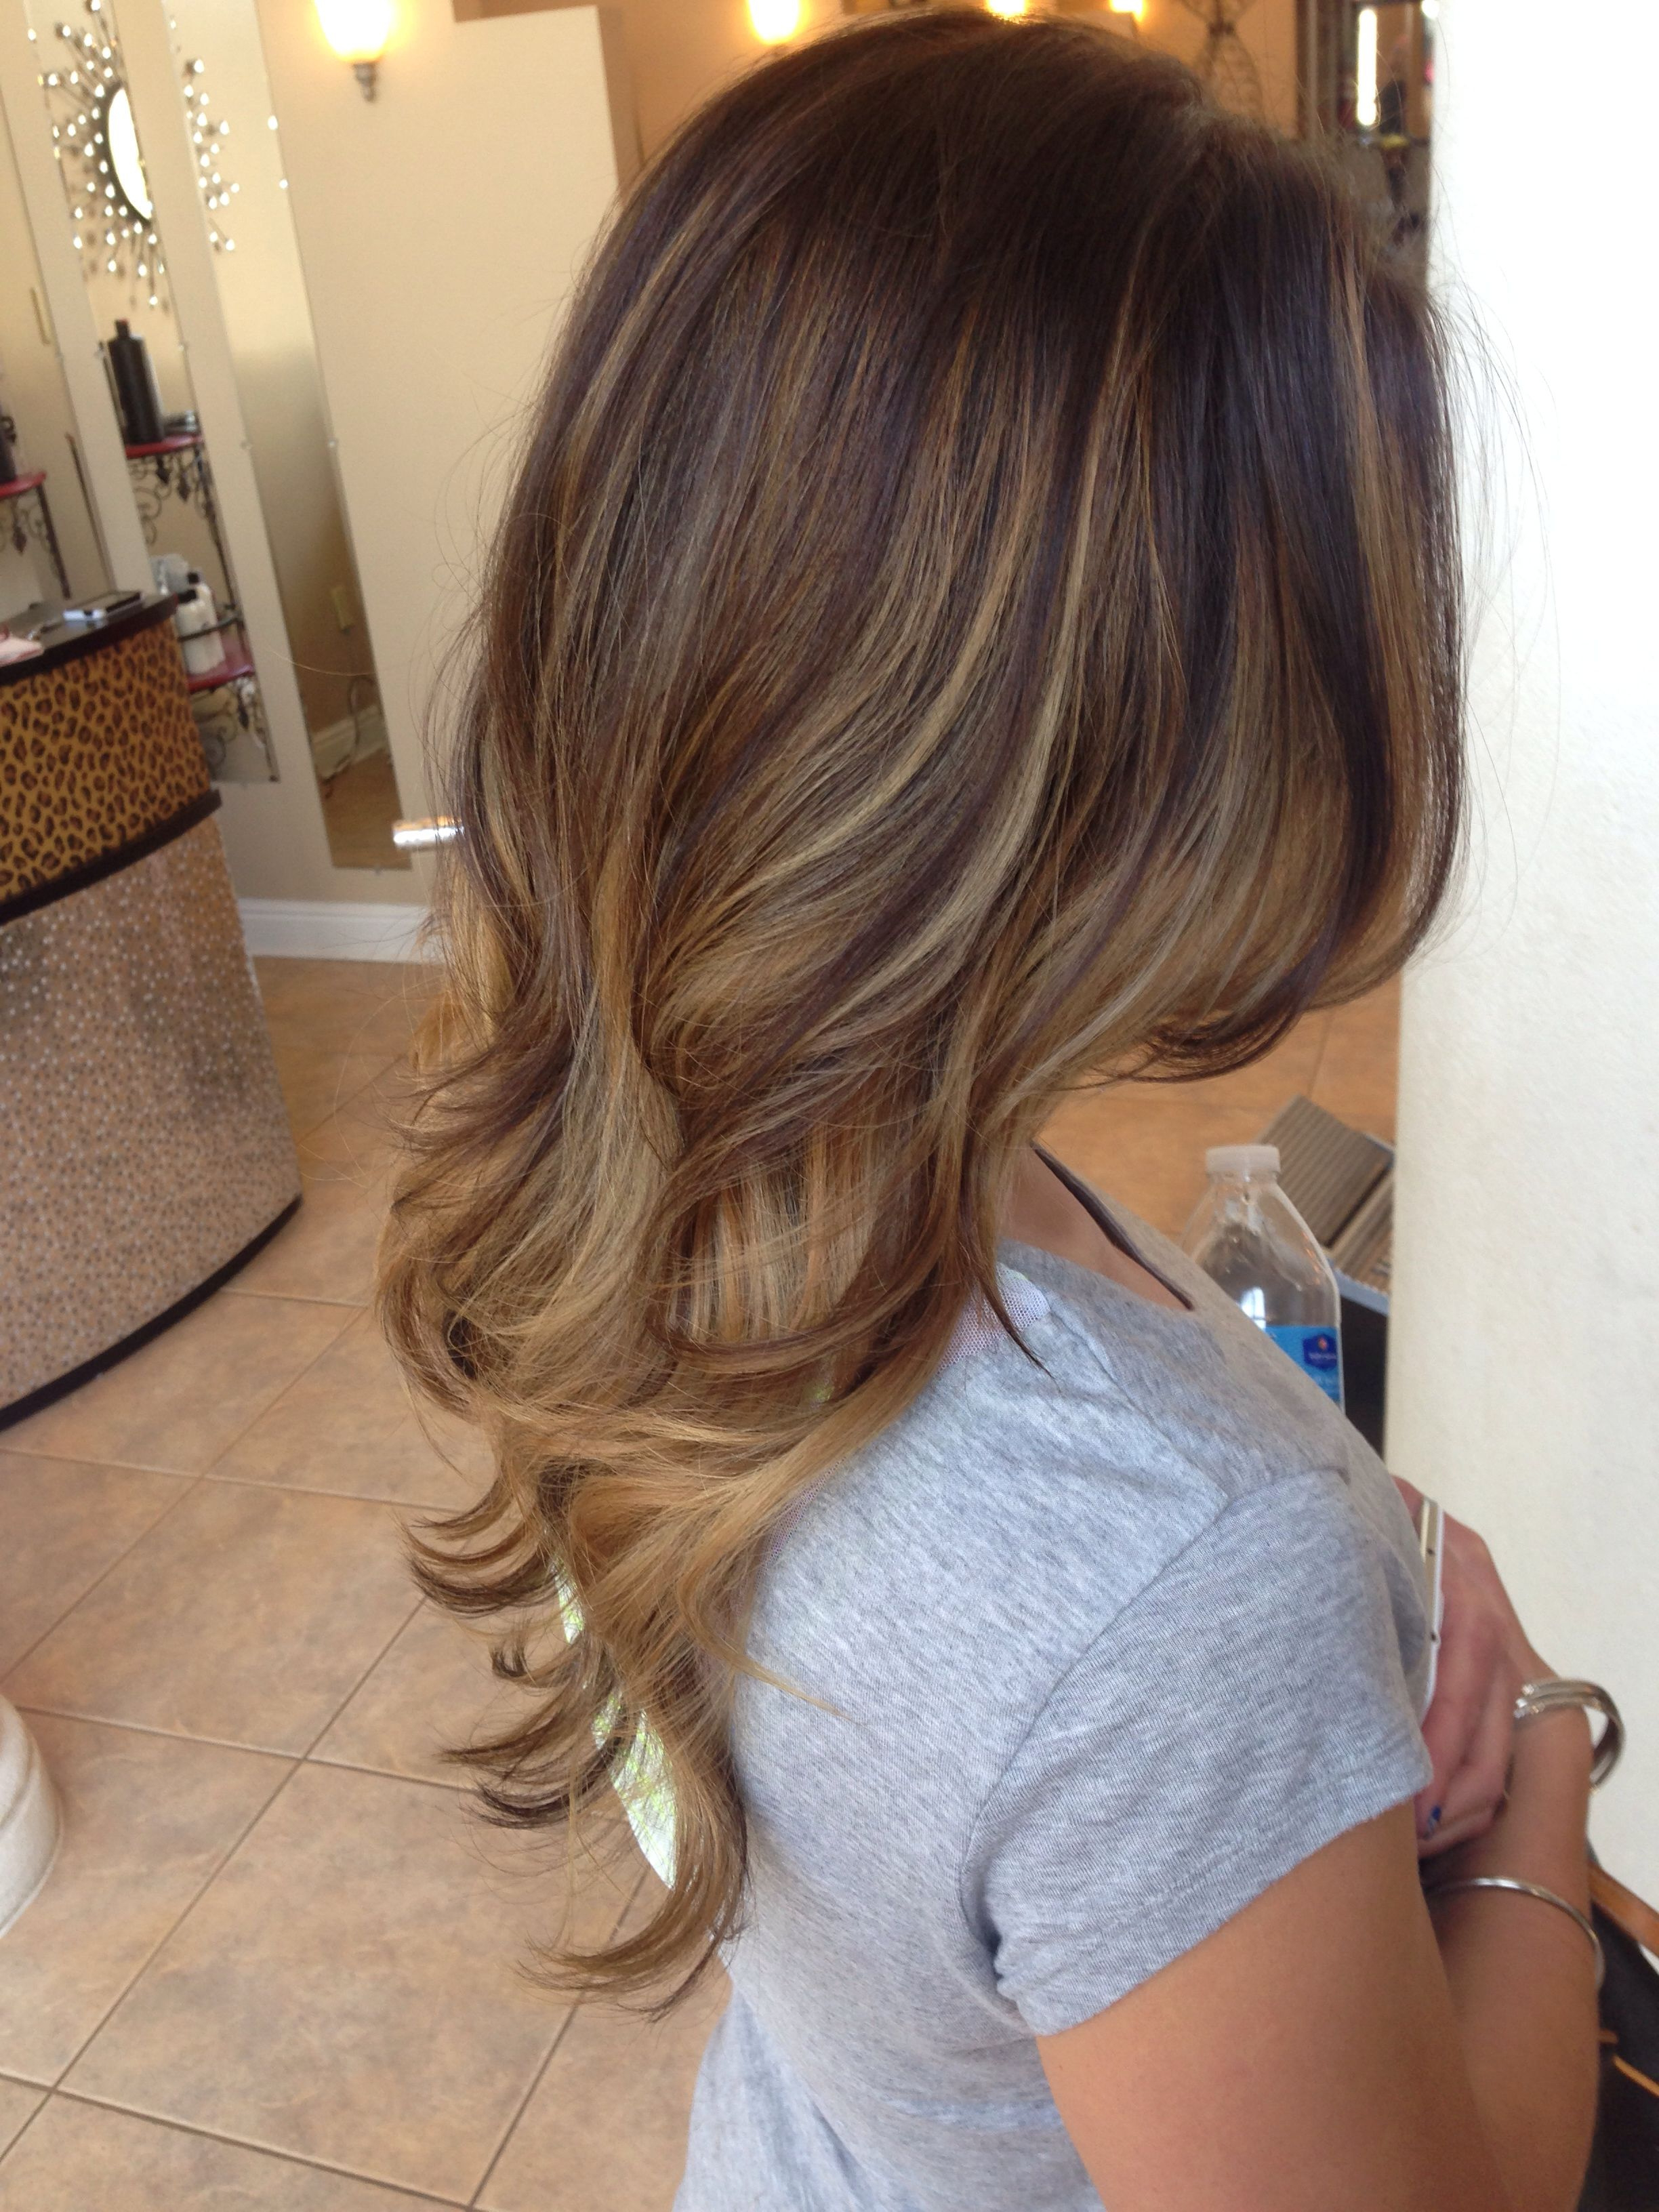 Hairstyles : Light Blonde Balayage Hair Most Inspiring Balayage Inside Newest Balayage Hairstyles For Long Layers (Gallery 19 of 20)